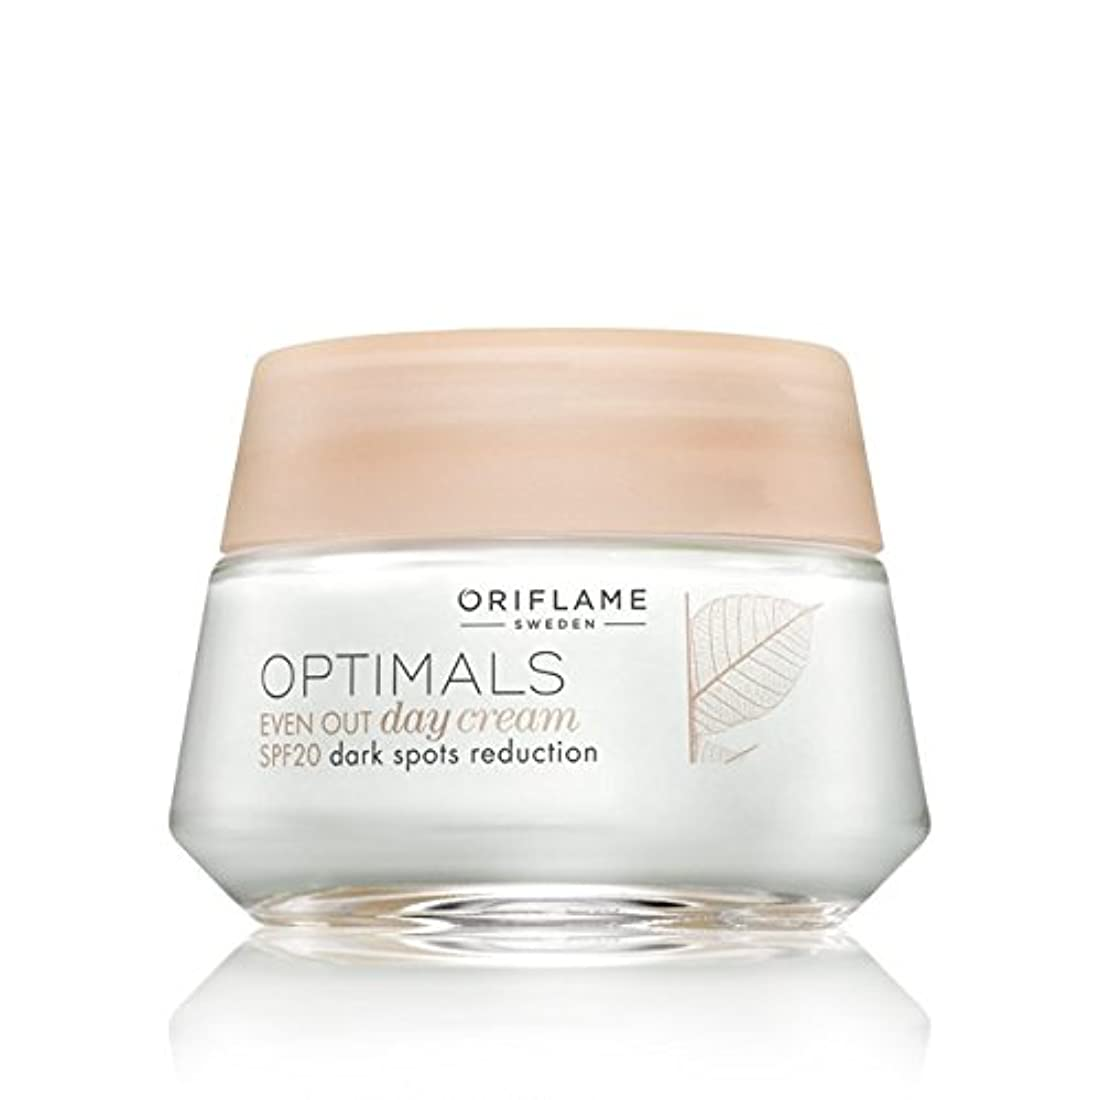 バンク囲む有毒Oriflame Optimals SPF 20 Dark Spot Reduction Even Out Day Cream, 50ml